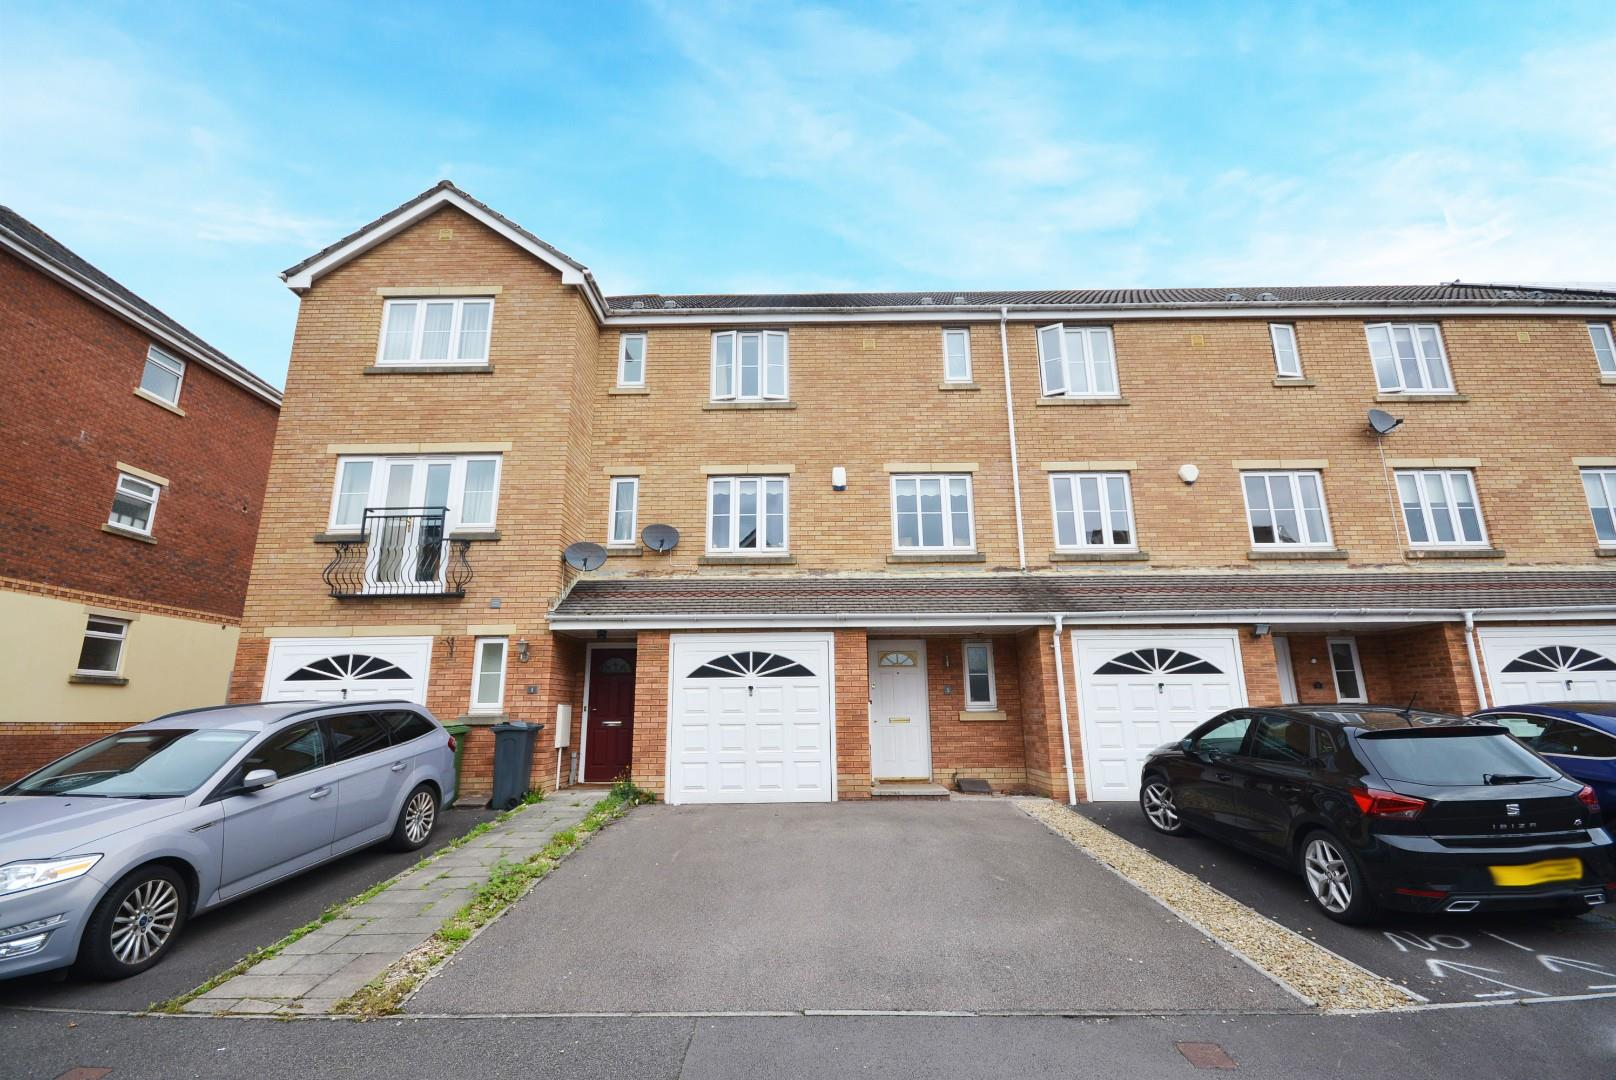 3 bed detached house for sale in Enbourne Drive, Cardiff - Property Image 1